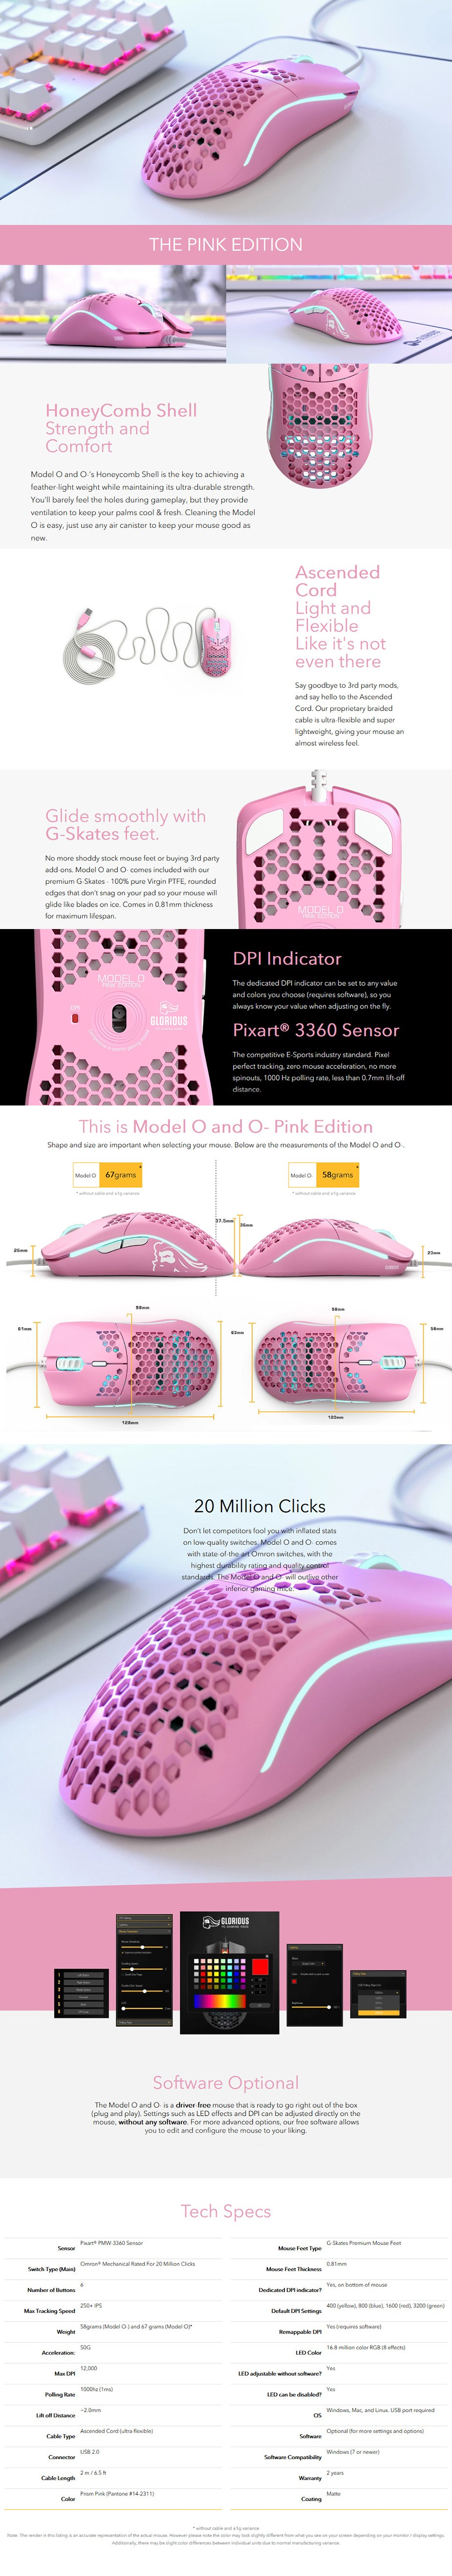 Glorious Model O Gaming Mouse - Pink - Overview 1